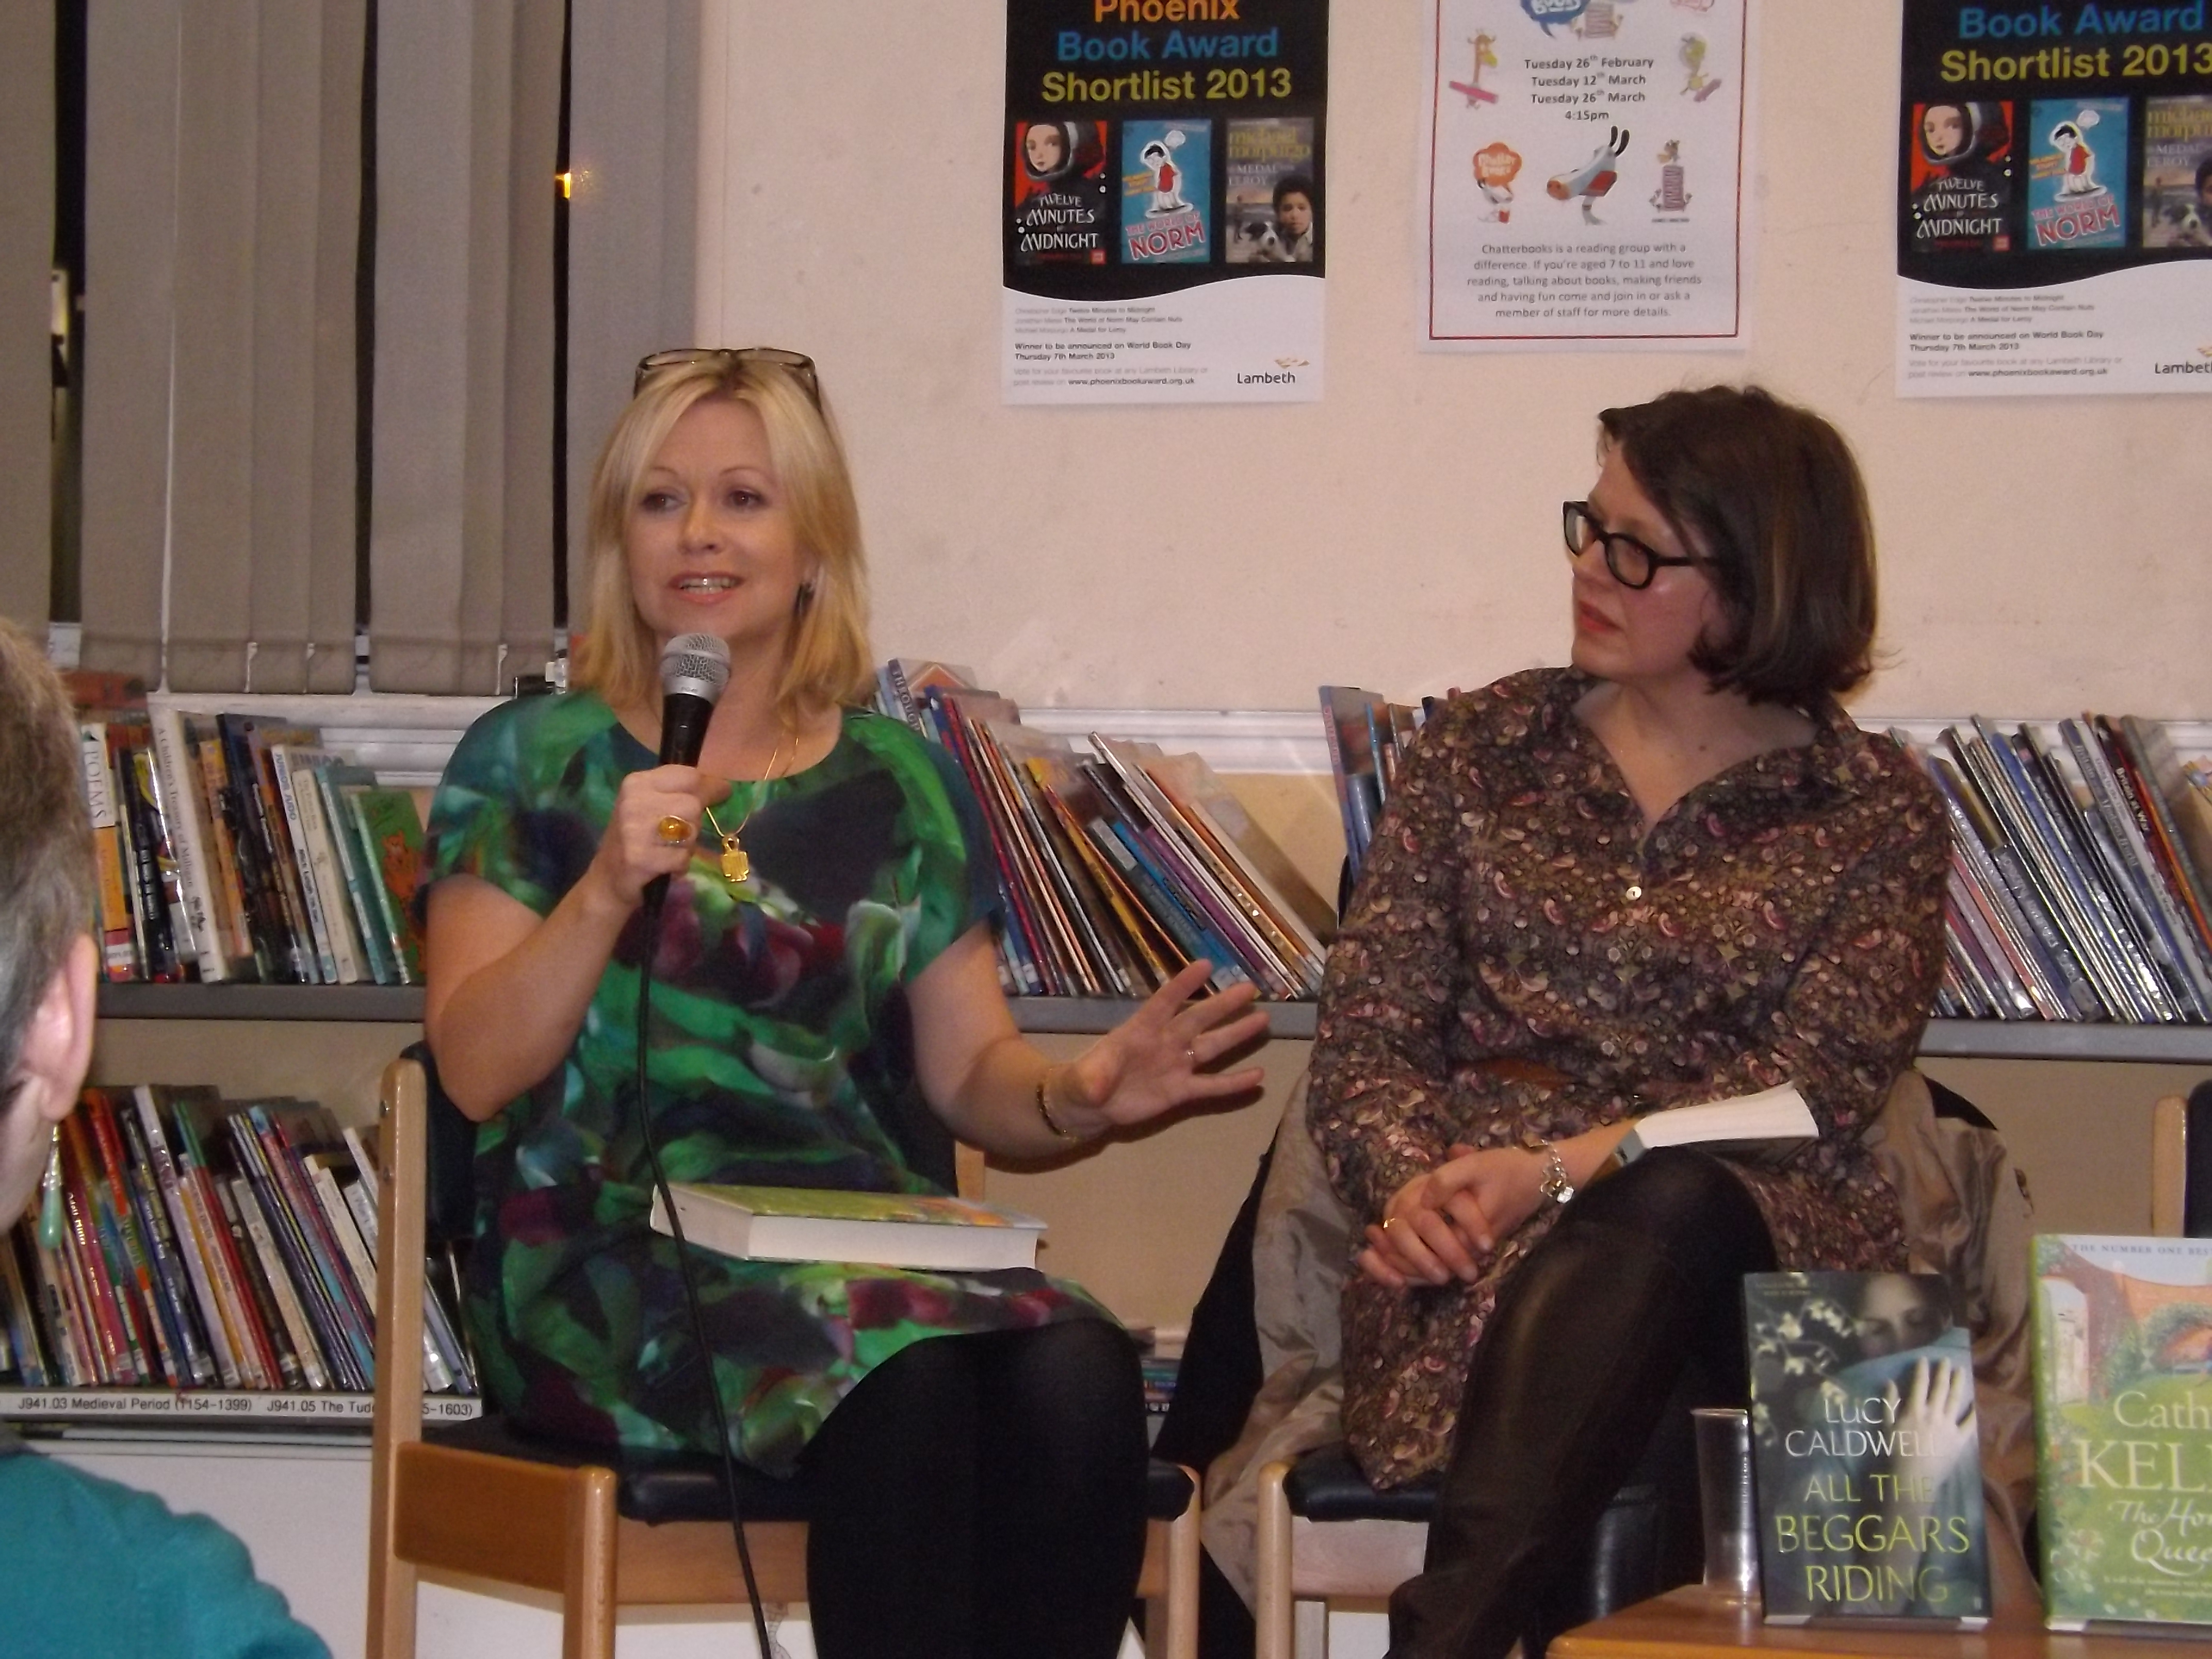 Cathy Kelly and Wendy Jones in conversation with readers at Brixton Library